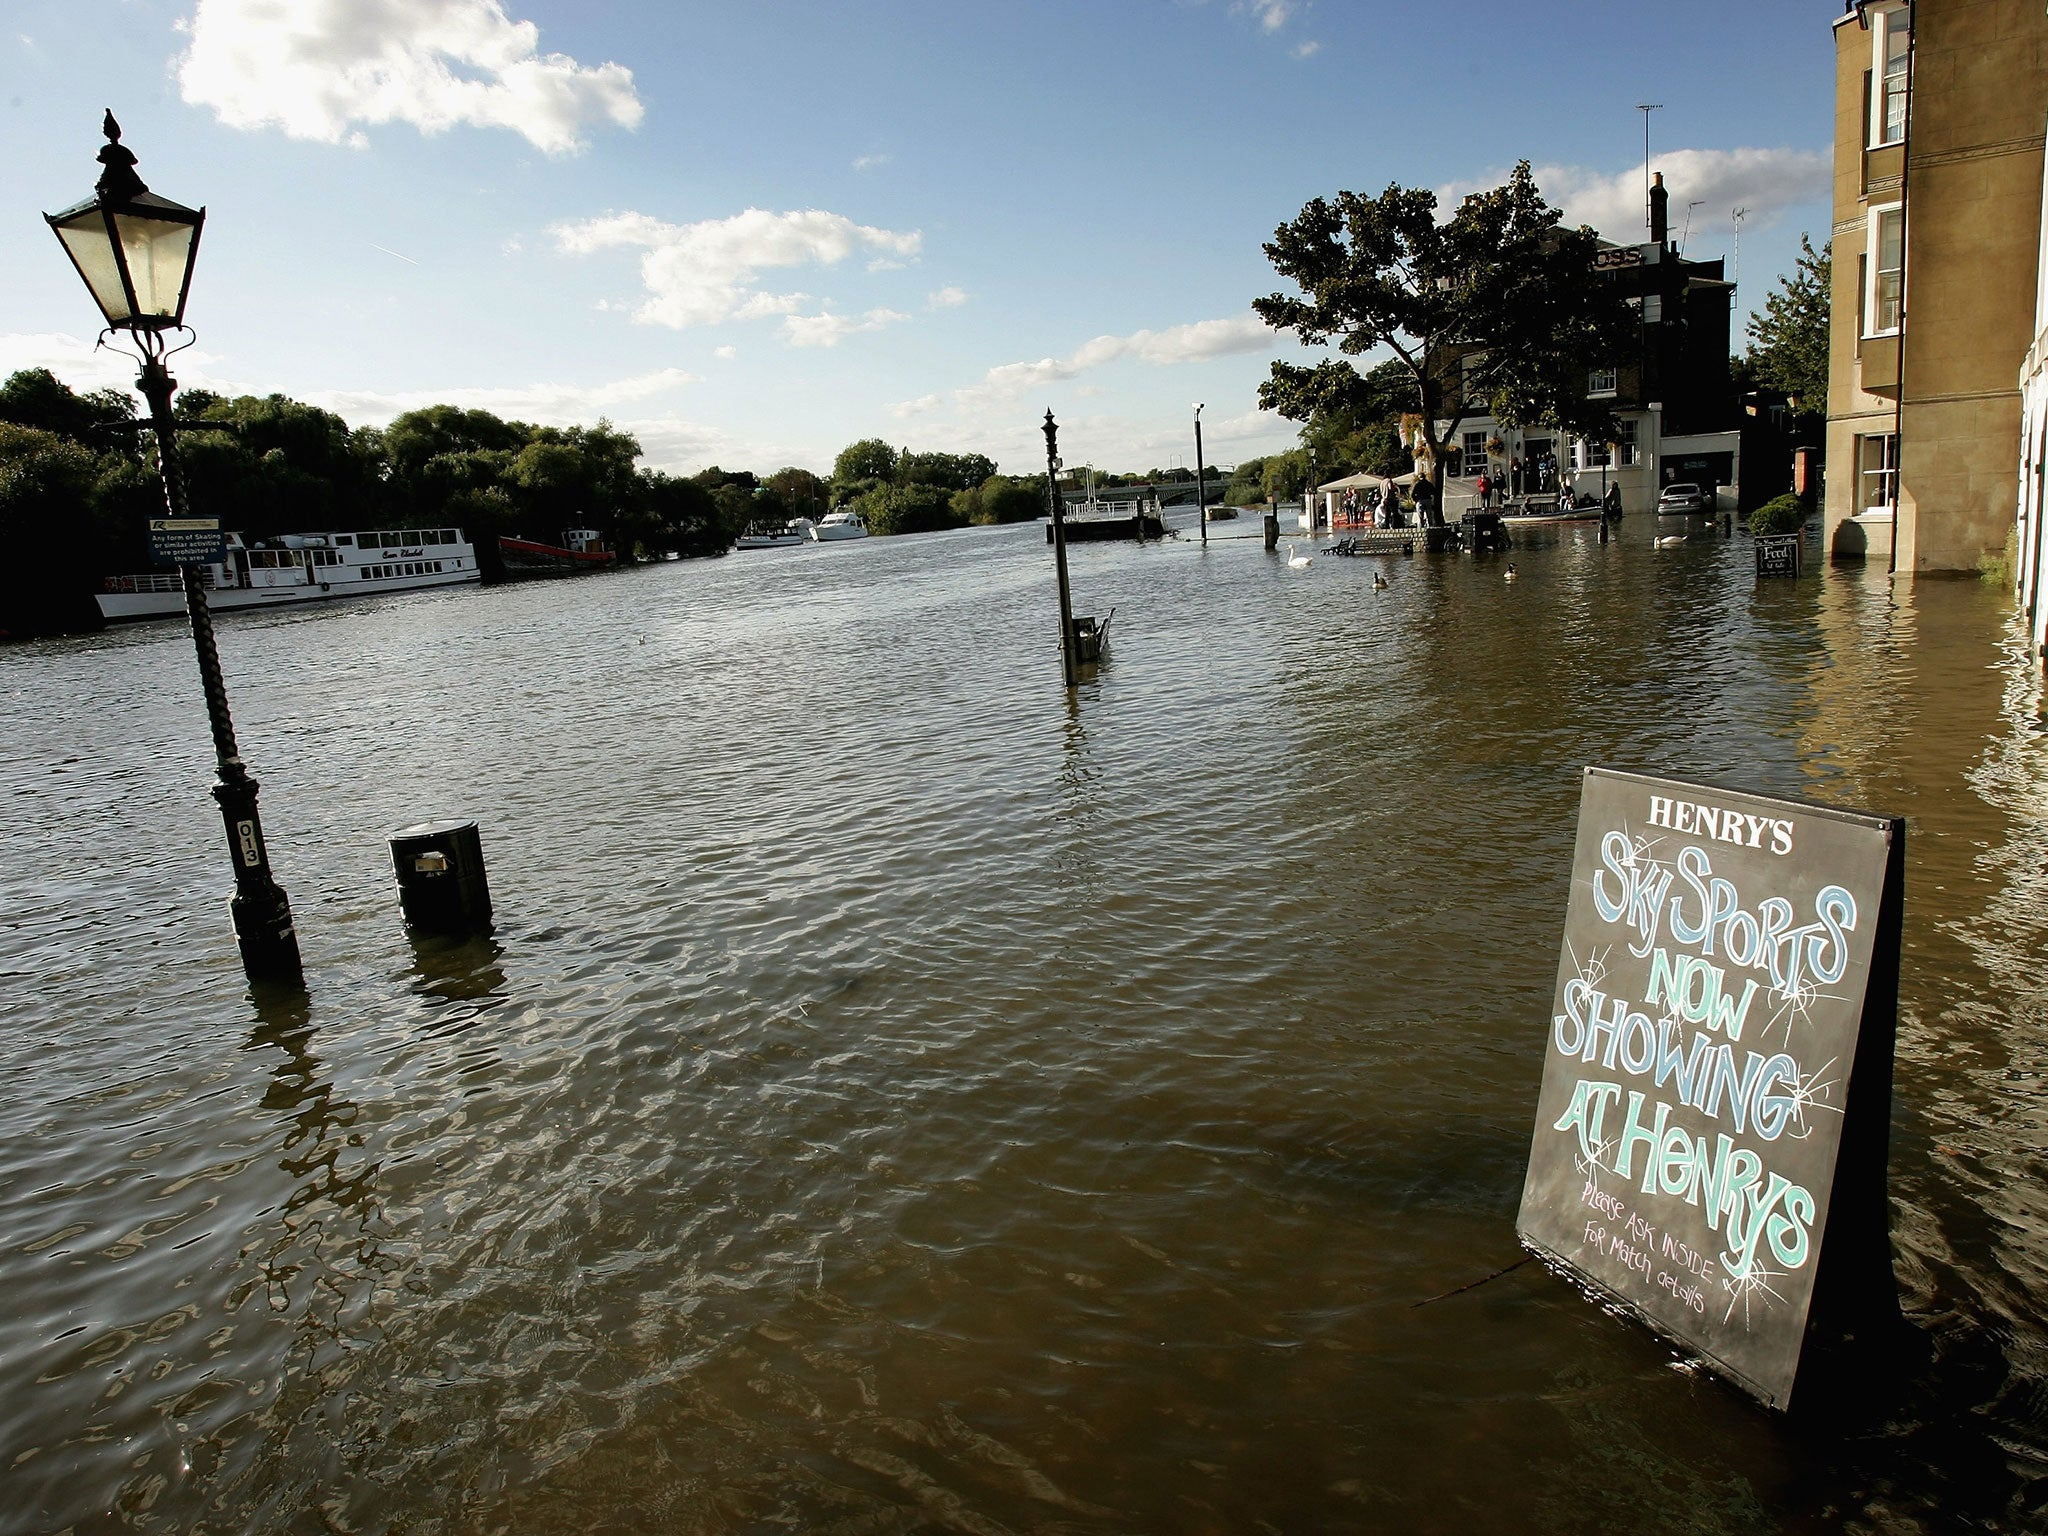 Worksheet. London flood risk Map shows areas of the capital most in danger